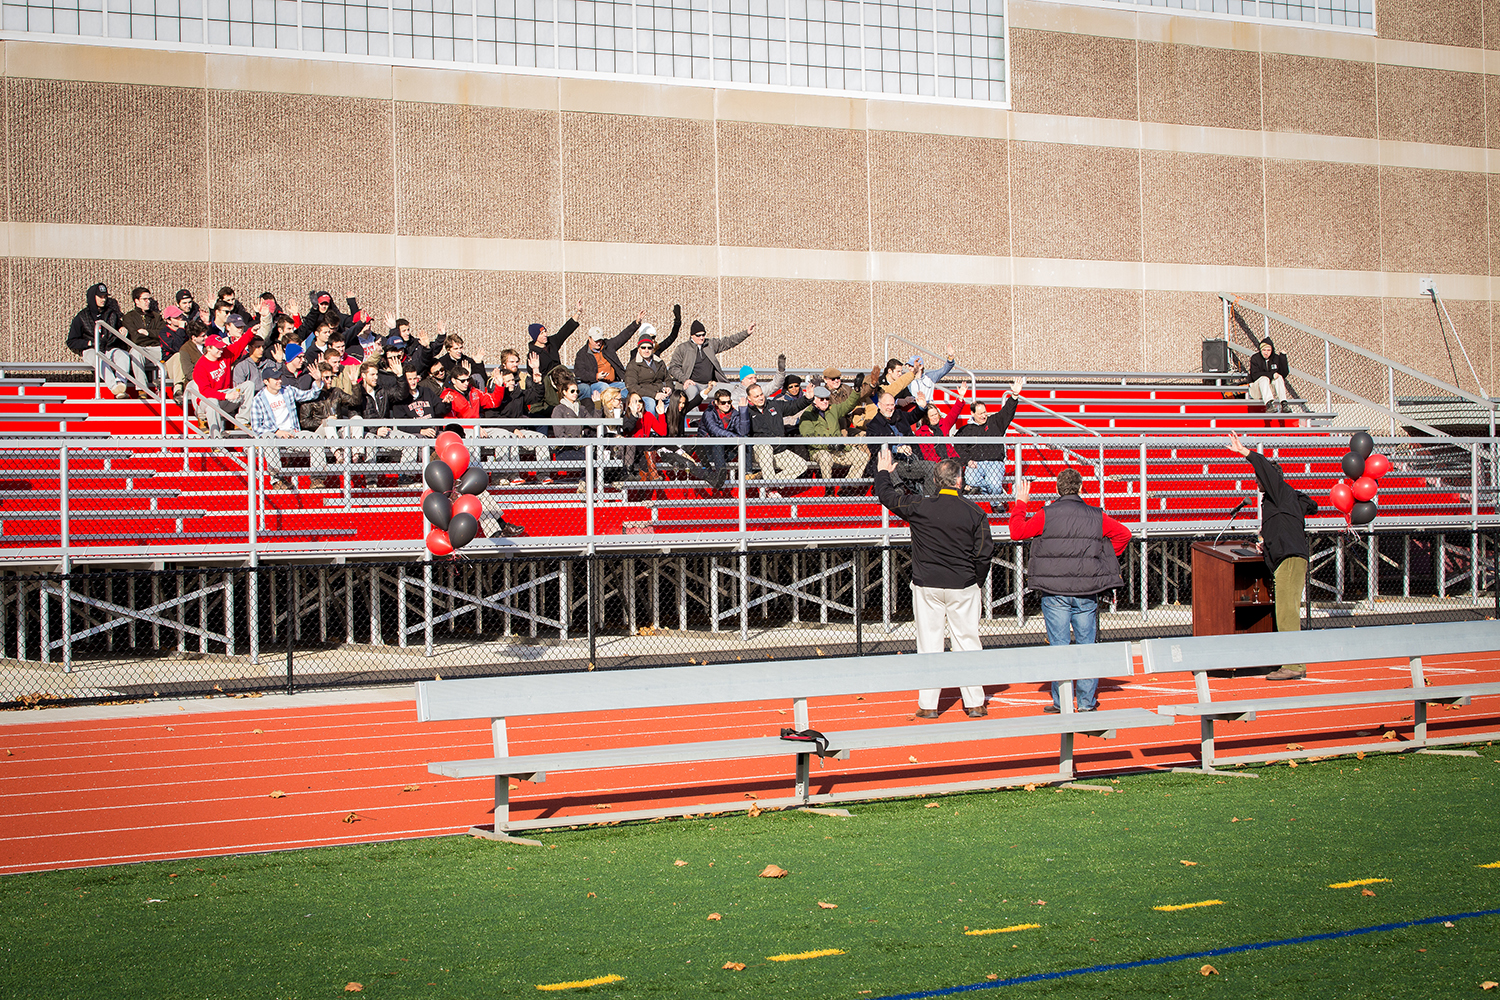 On Nov. 22, Wesleyan formally dedicated its new synthetic turf field, naming it Citrin Field, in honor of the Citrin family. The turf field is located to the south of the Freeman Athletic Center inside Andersen Track.